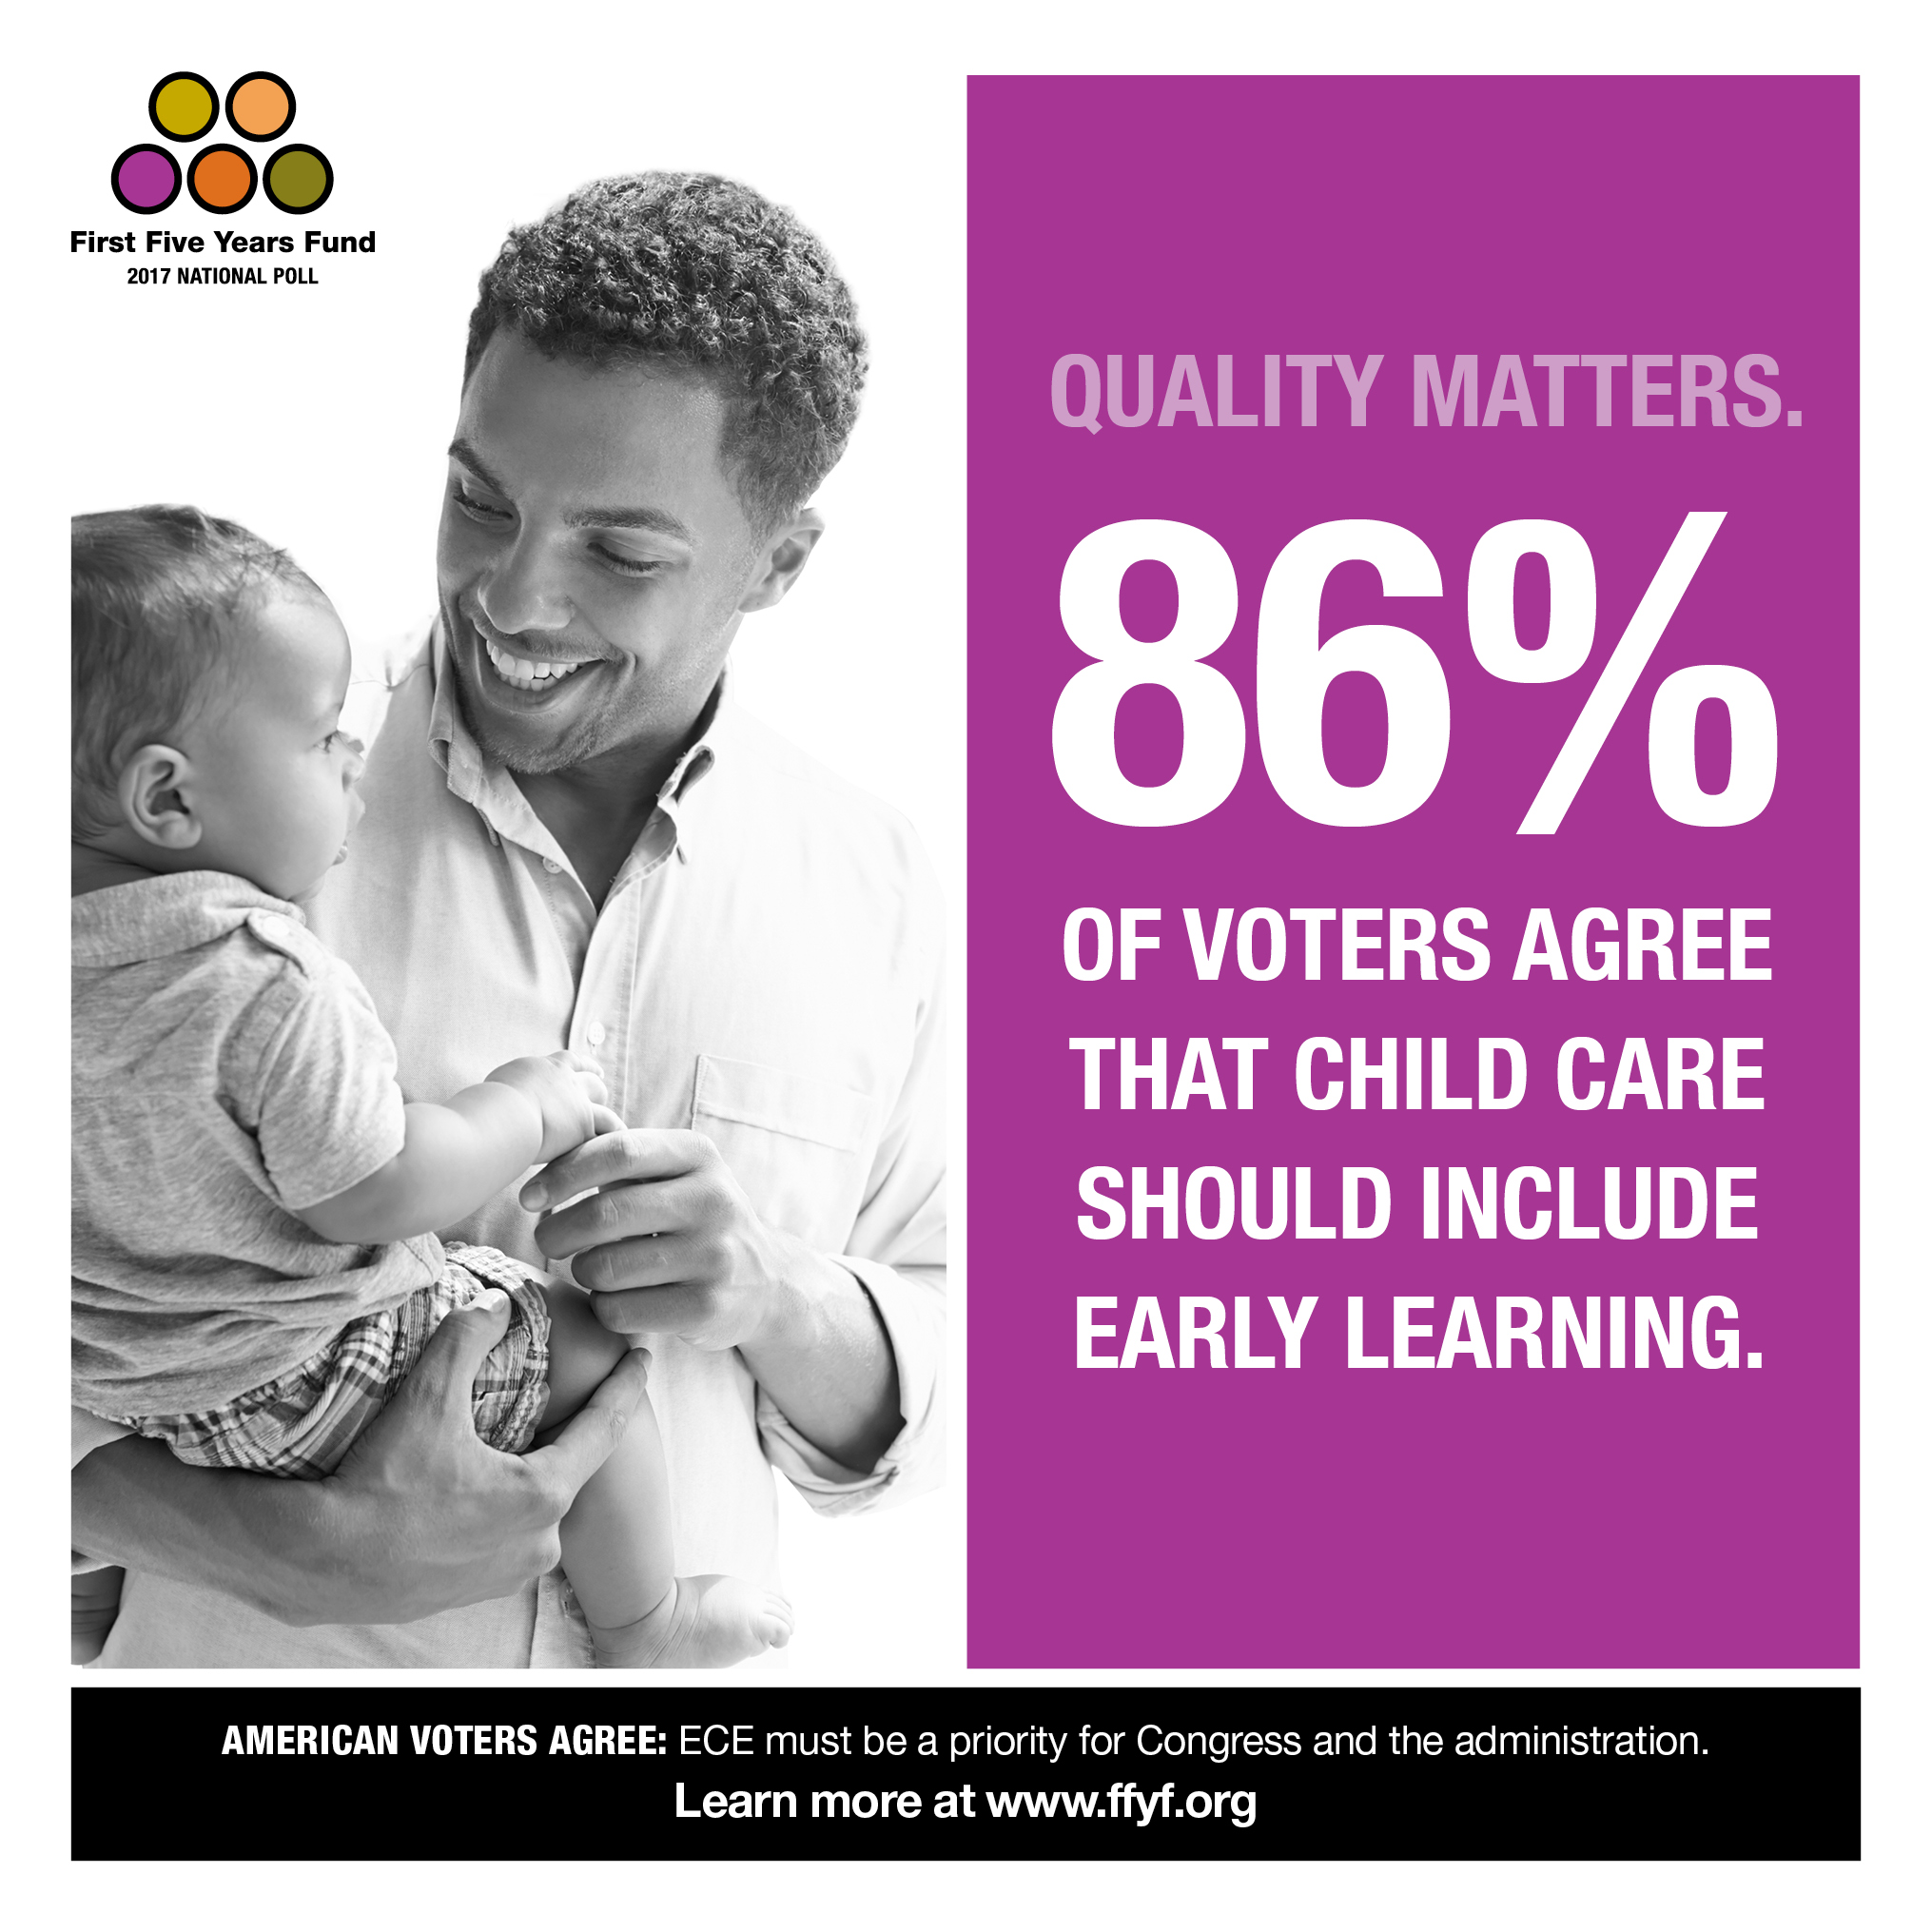 2017 National Poll: Voters Agree That Child Care Should Include Early Learning